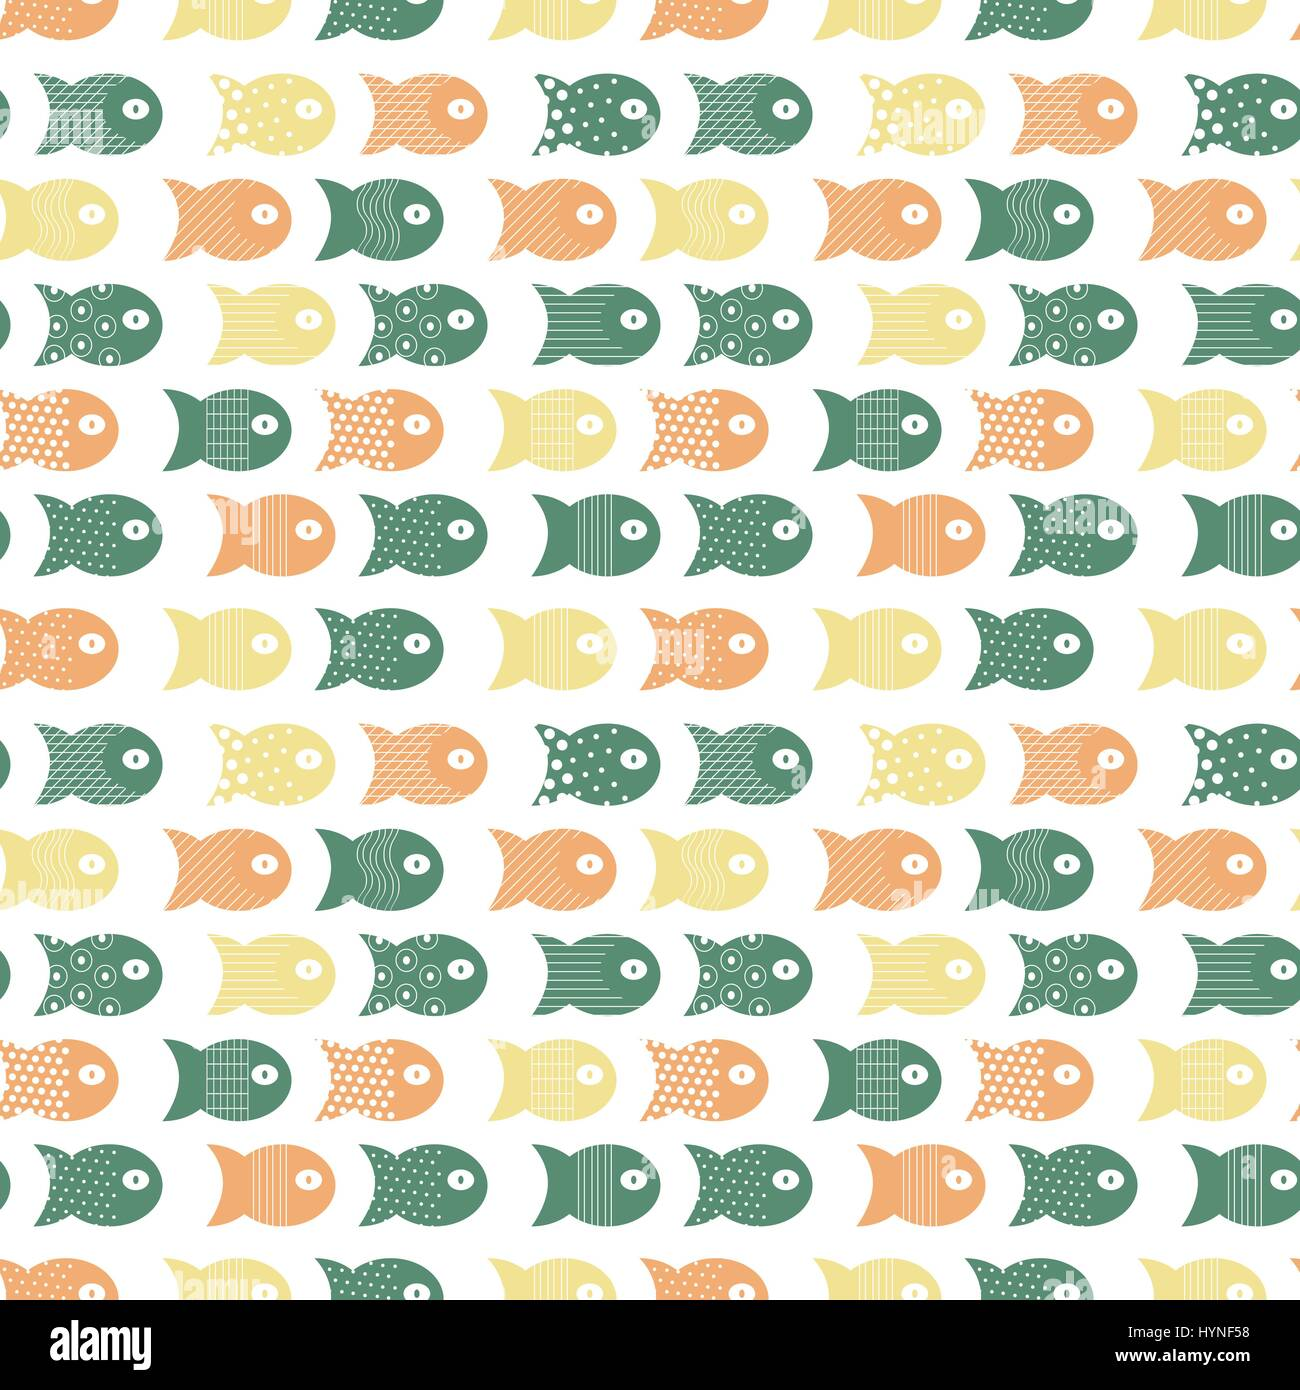 Fish seamless pattern for fabric textile design, pillows, wallpapers,cloth,bags,scrapbook paper. - Stock Vector